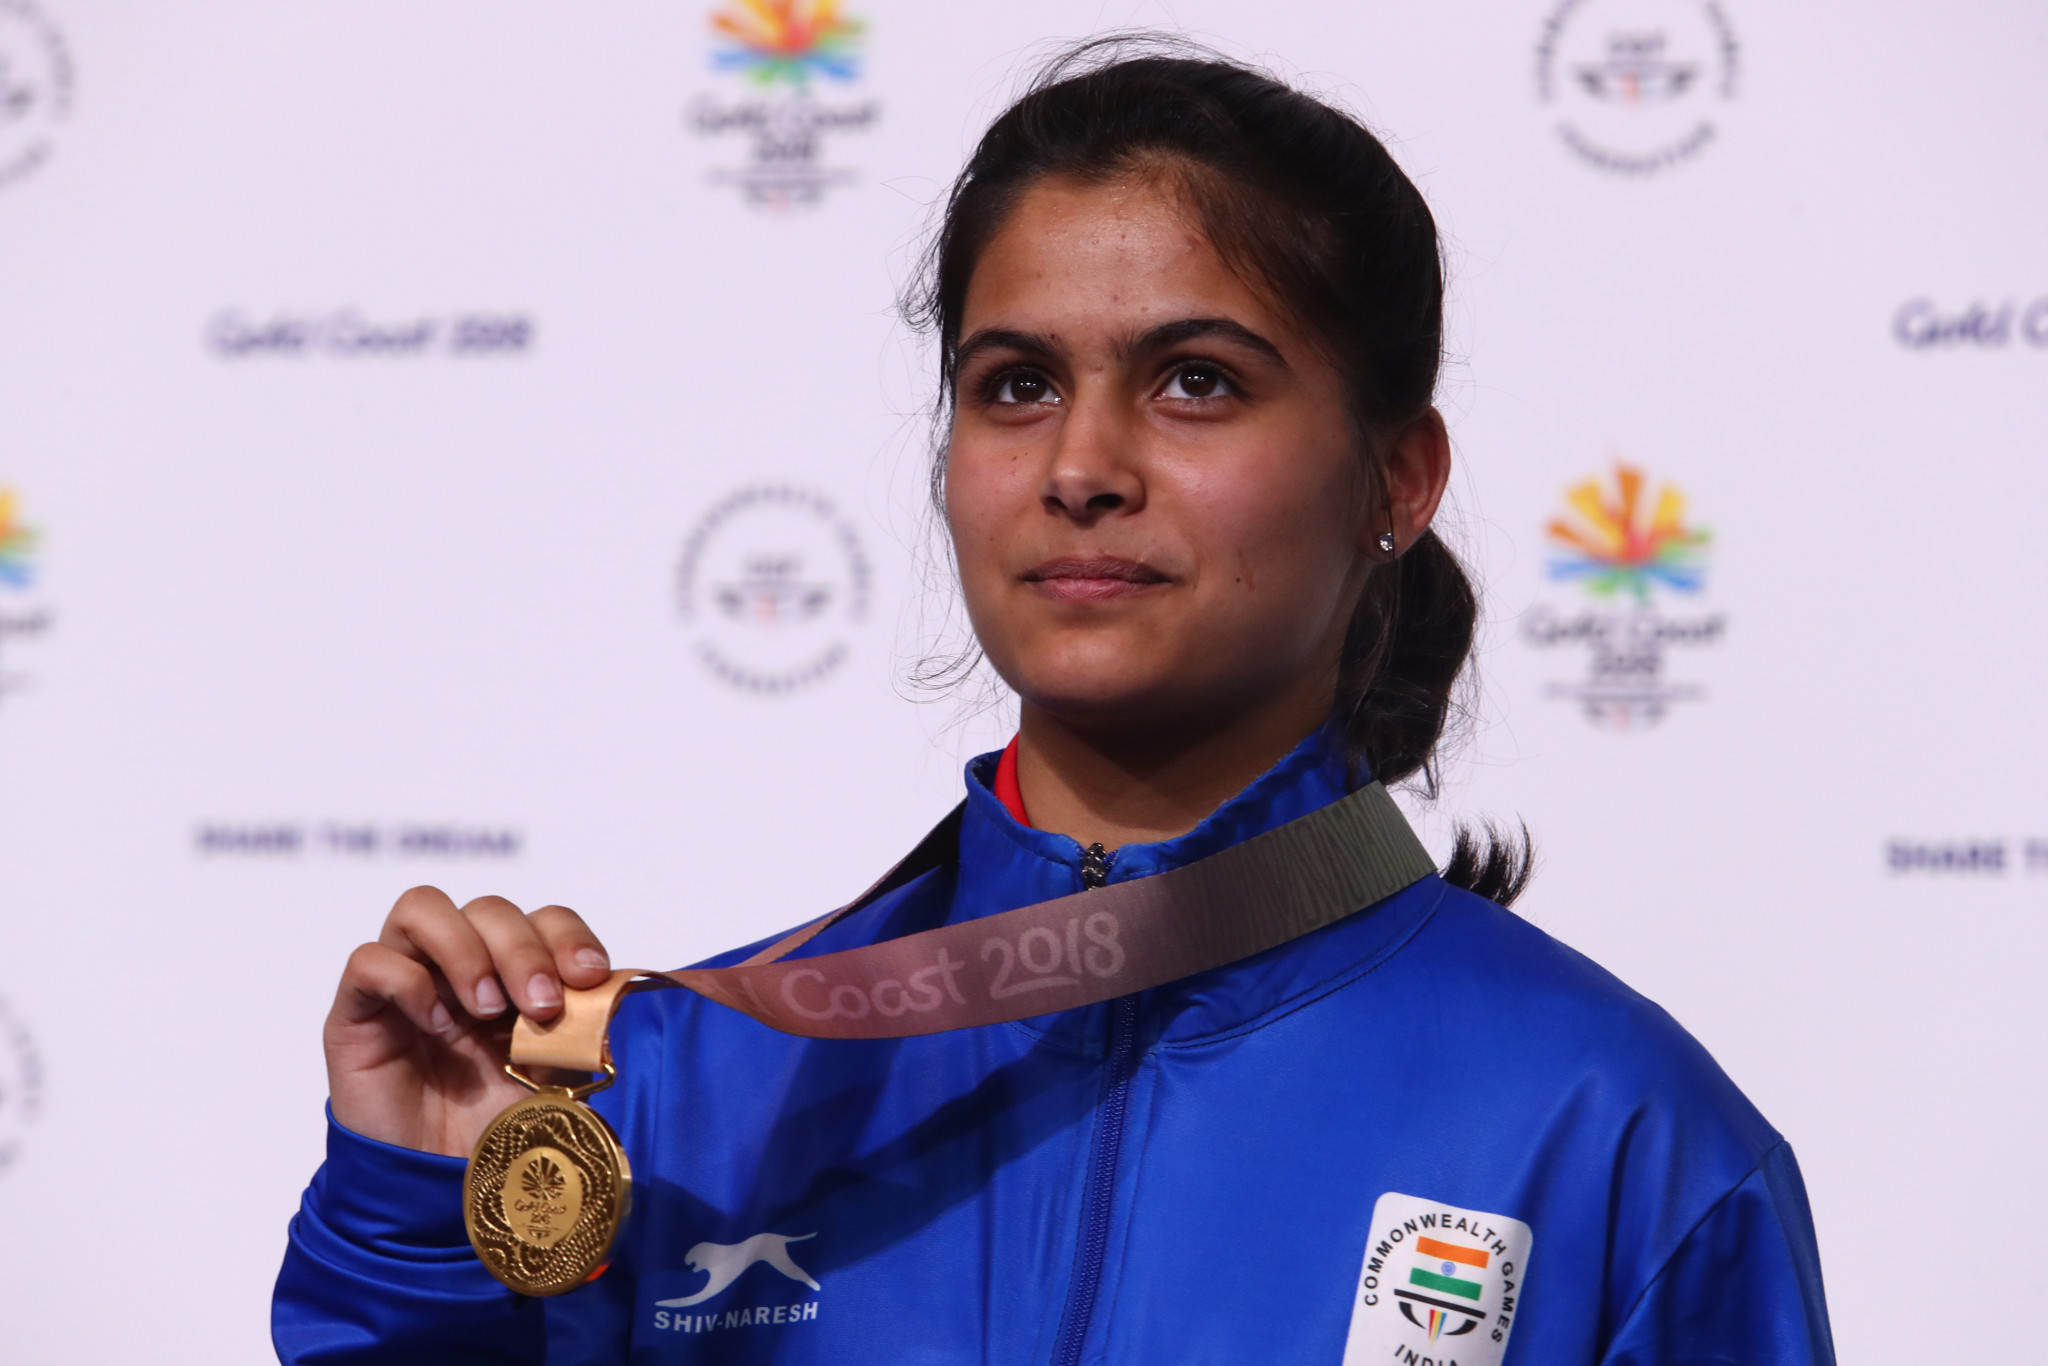 Commonwealth Games shooting gold medallist Manu Bhaker has been chosen to carry India's flag at the Opening Ceremony of Buenos Aires 2018 ©Getty Images